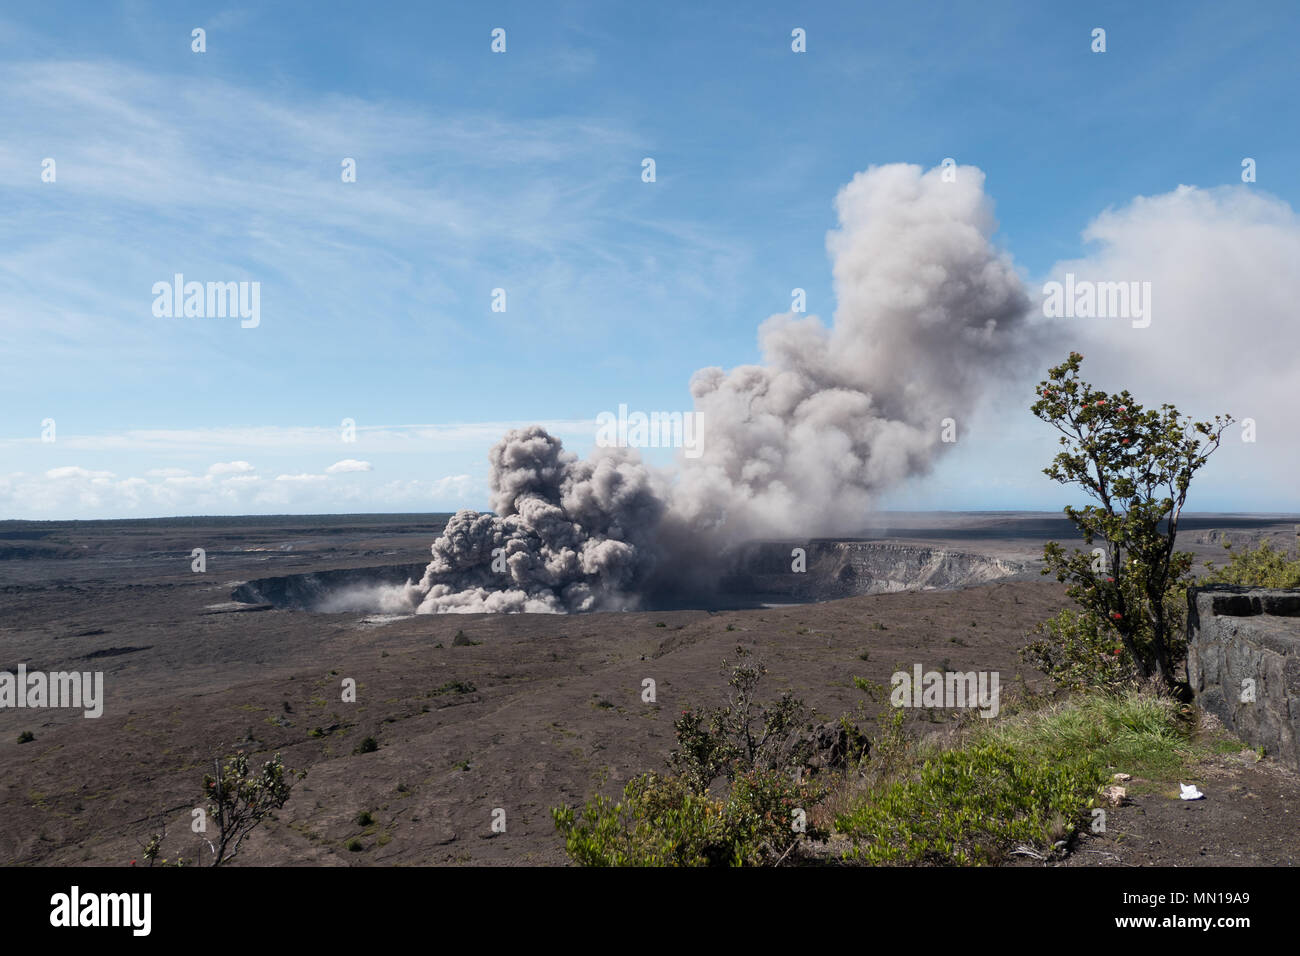 Hawaii, USA 12th May 2018. A grey ash plume rises from the Kilauea volcano May 11, 2018 in Hawaii. The recent eruption continues destroying homes, forcing evacuations and spewing lava and poison gas on the Big Island of Hawaii. Credit: Planetpix/Alamy Live News Stock Photo